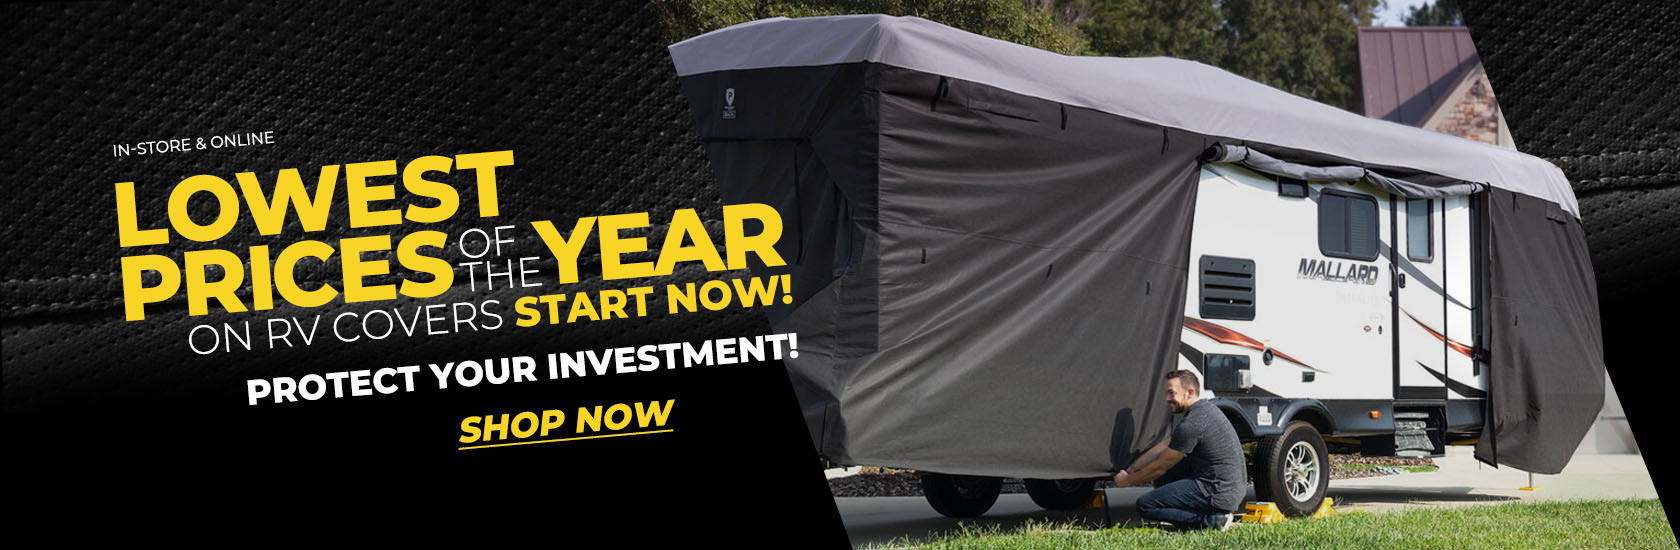 Lowest Prices of the year on RV Covers Start NOW!